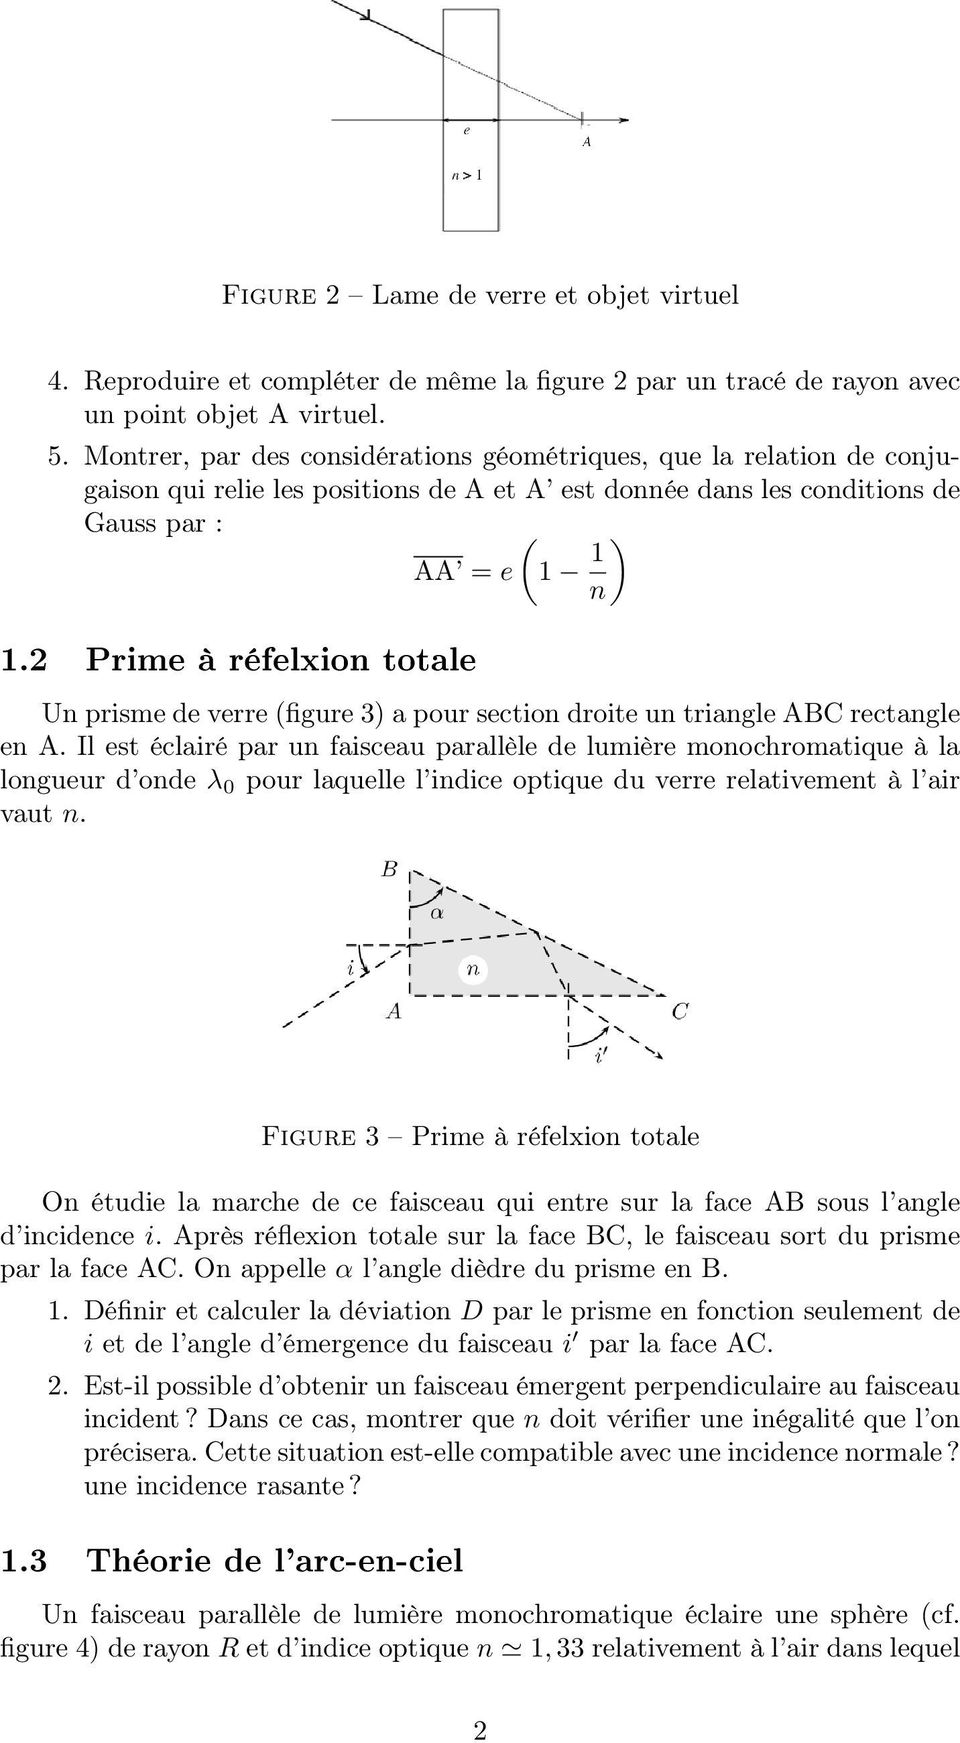 2 Prime à réfelxion totale Un prisme de verre (figure 3) a pour section droite un triangle ABC rectangle en A.